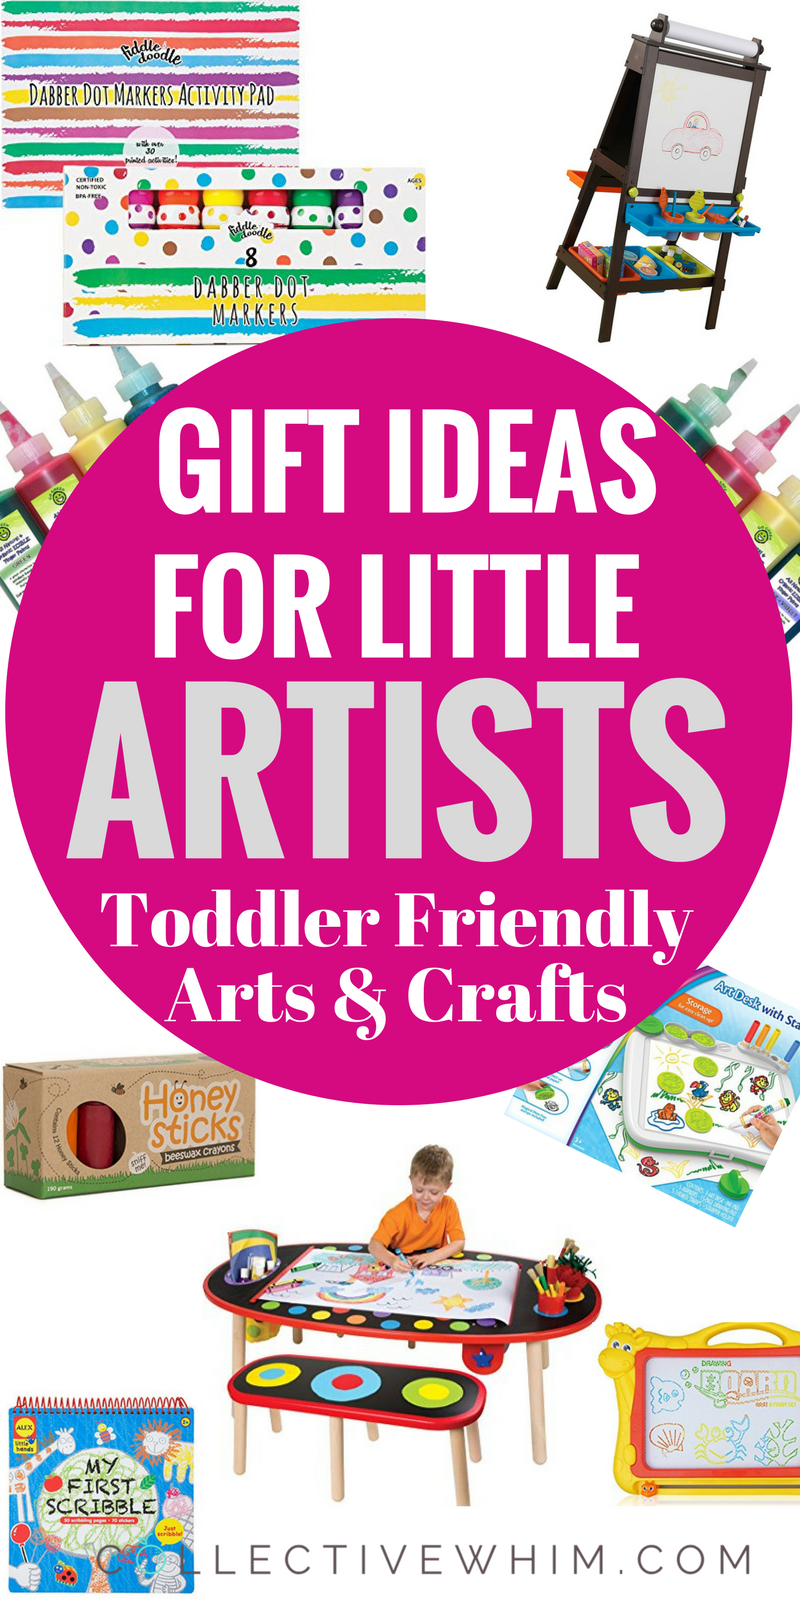 Gift Ideas For Toddlers (Little Artists, Arts & Crafts Gift Ideas ...